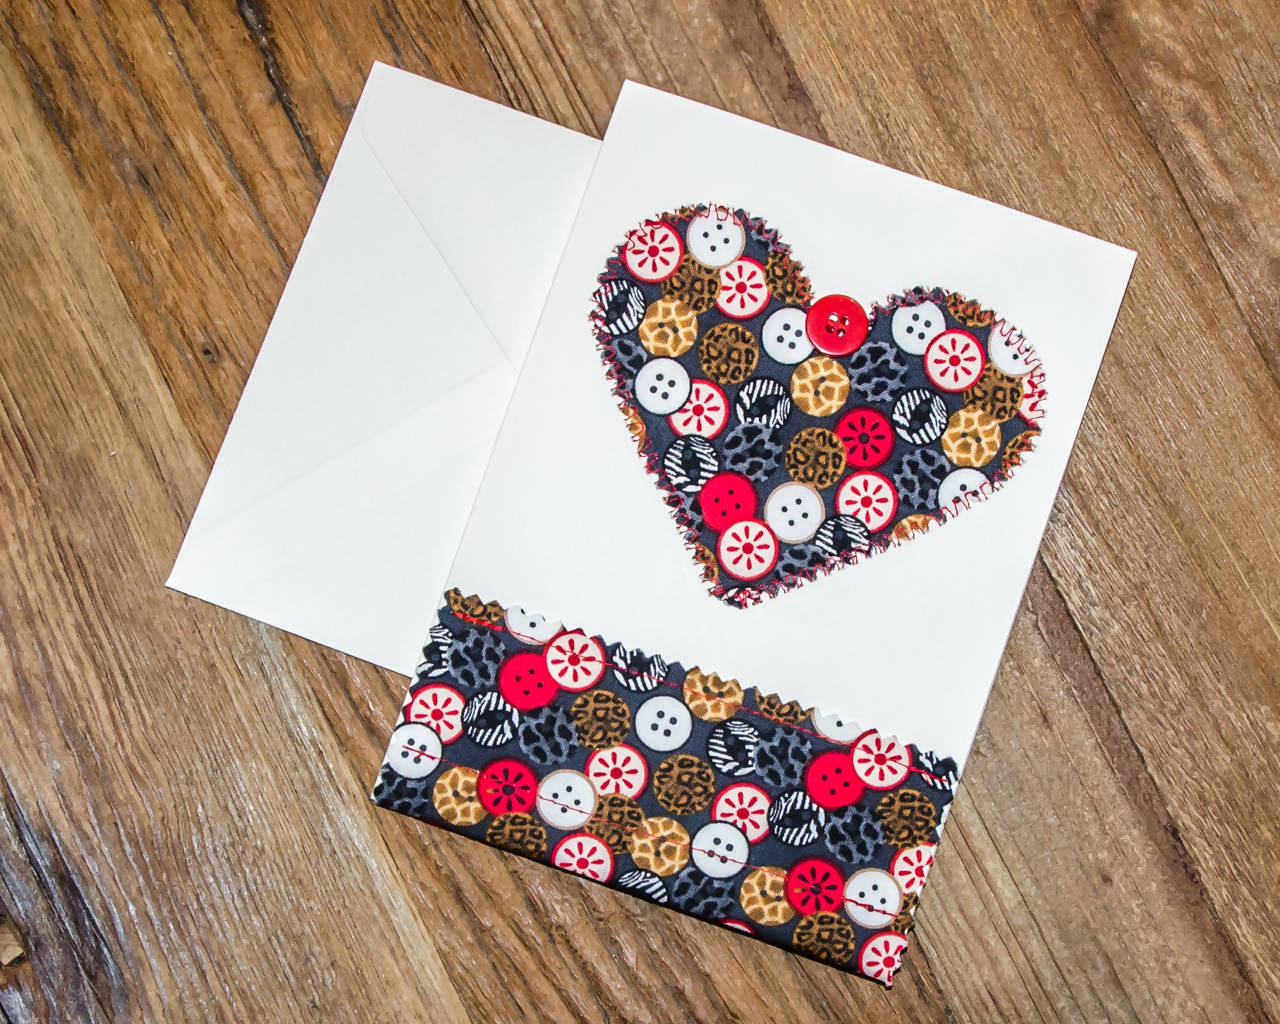 Heart-shaped, Button Themed Greeting cards - Handmade- Fabric on Paper / Blank Inside for any occasion. Package of 2